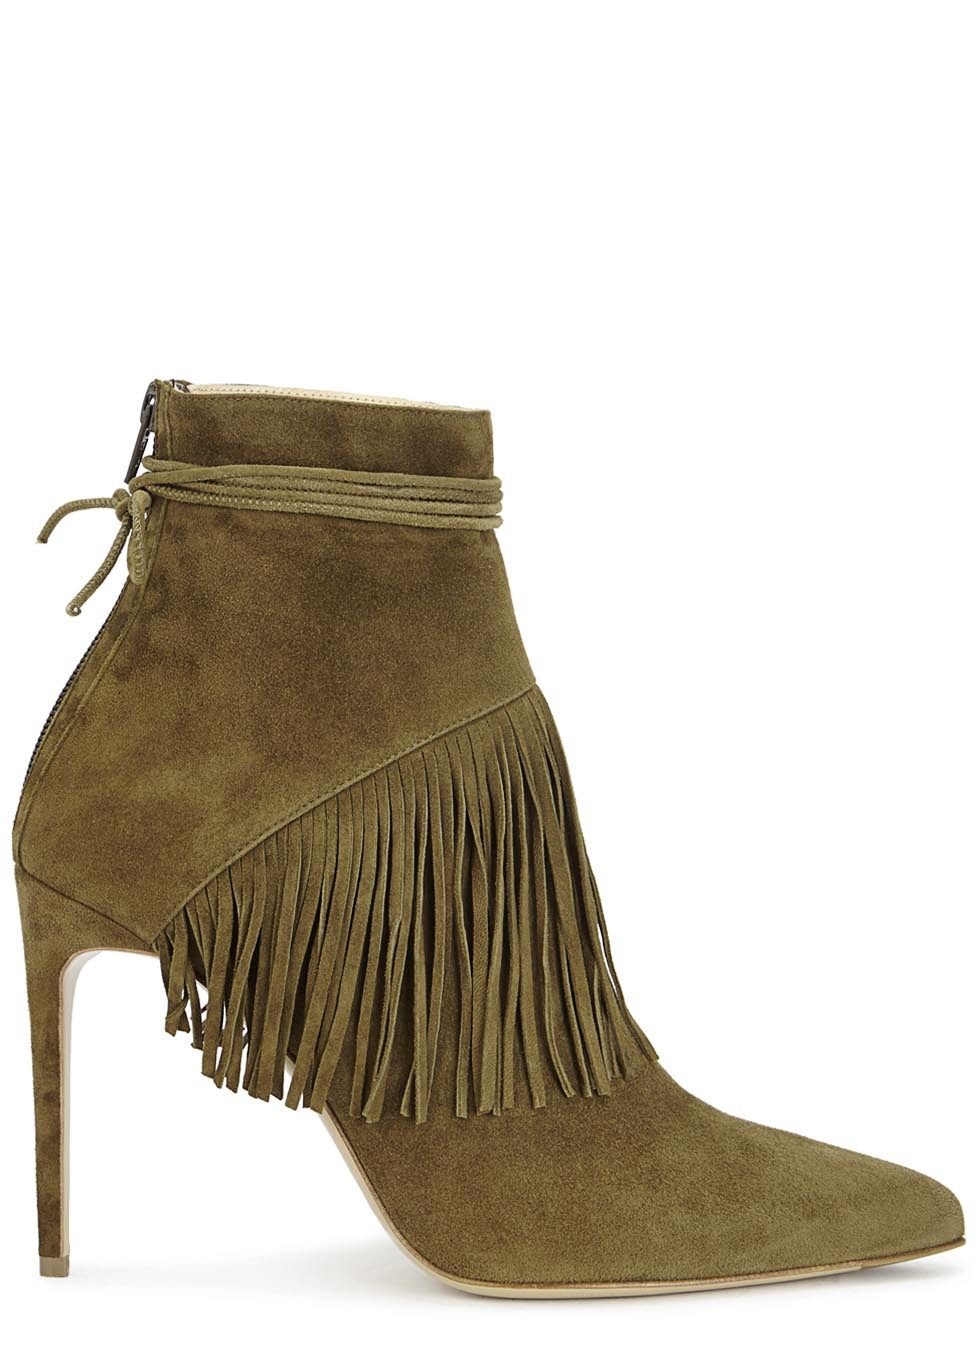 Sahar Olive Fringed Suede Ankle Boots - predominant colour: khaki; occasions: casual; material: suede; heel: stiletto; toe: pointed toe; boot length: ankle boot; style: standard; finish: plain; pattern: plain; embellishment: fringing; heel height: very high; season: s/s 2016